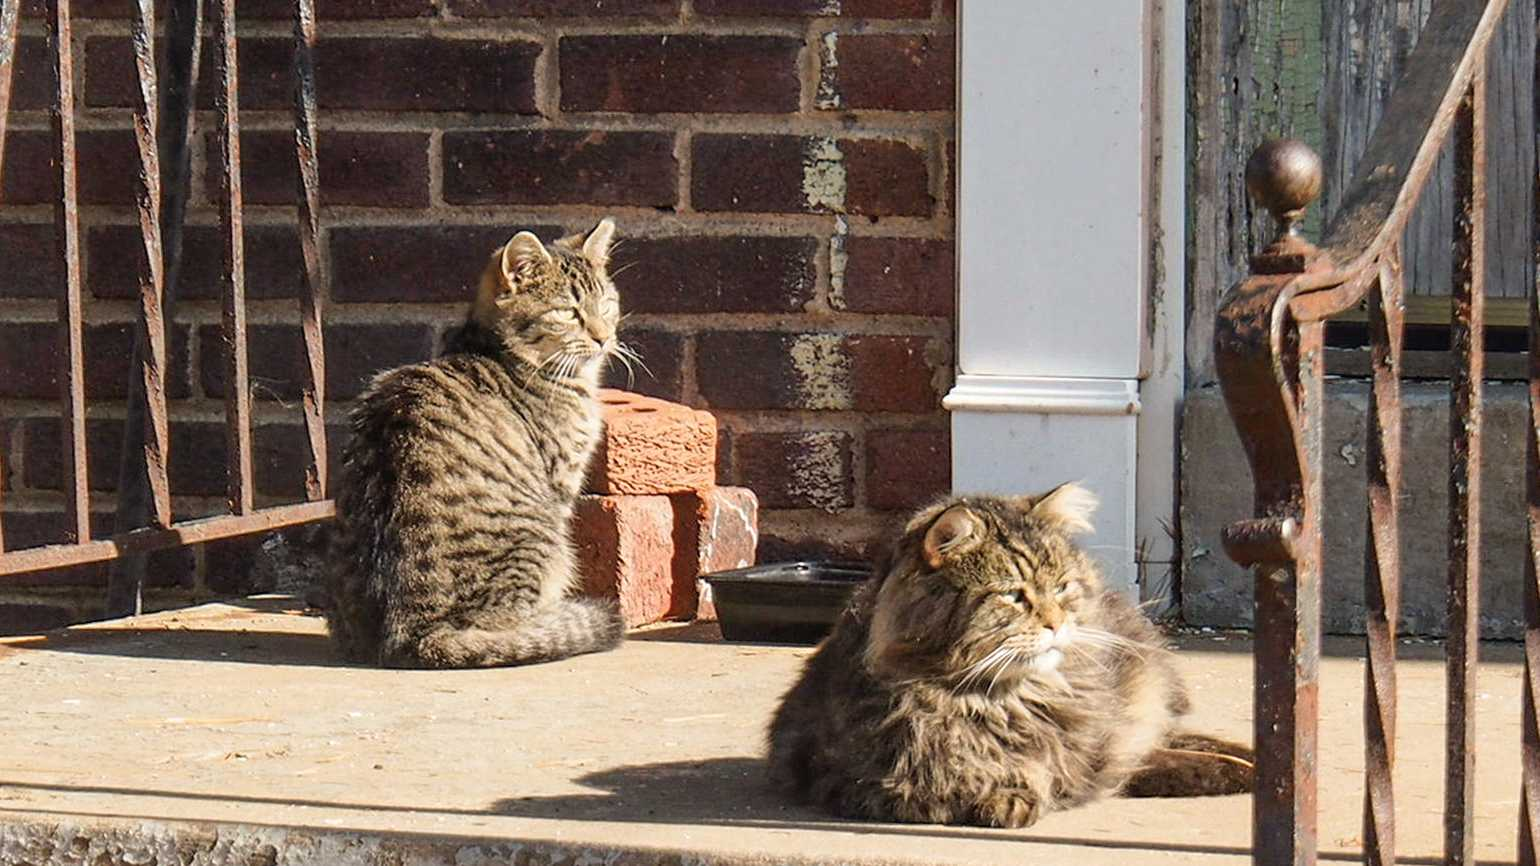 Two stray cats on the lookout.